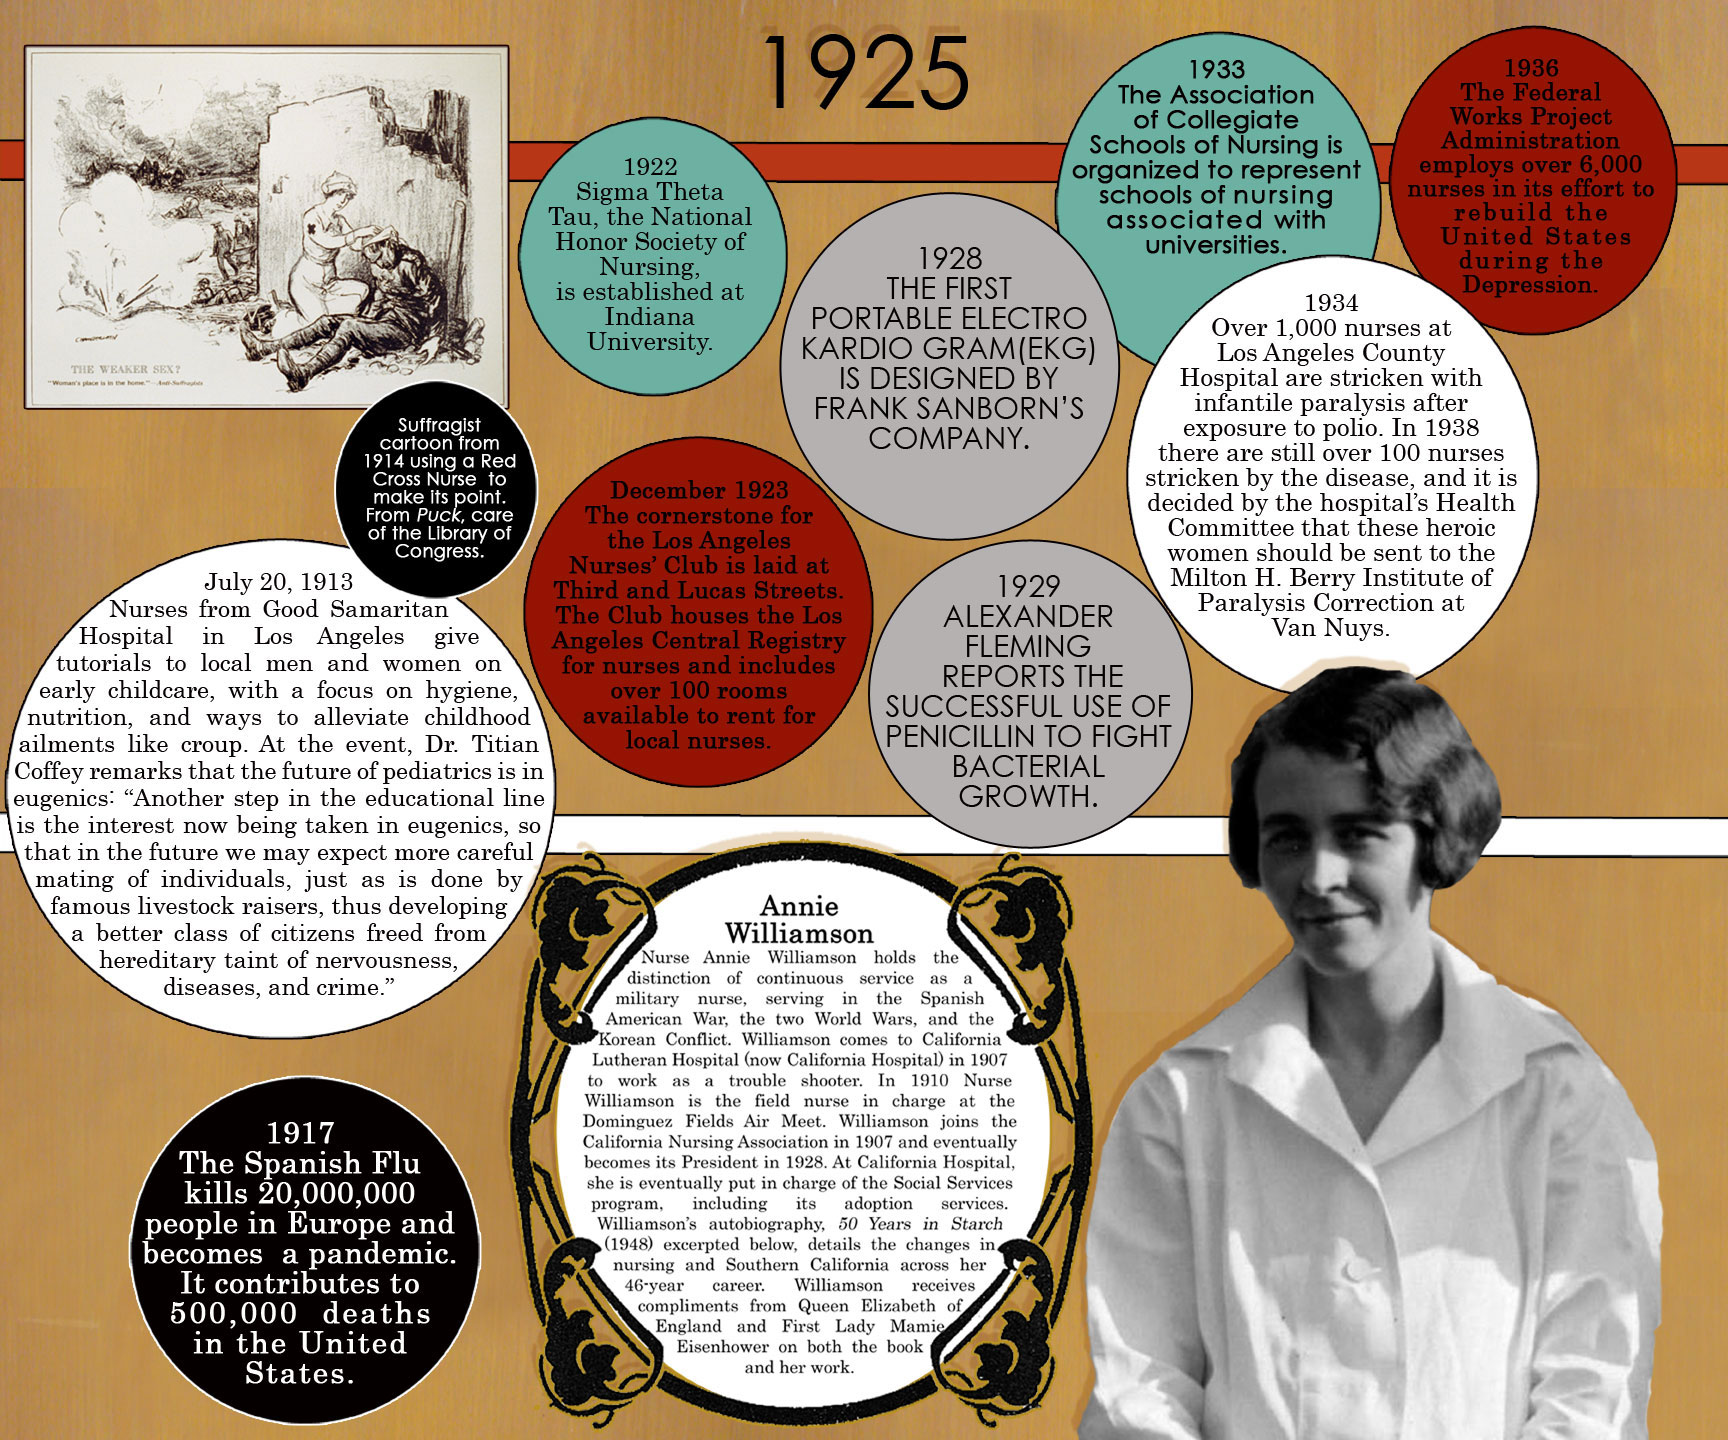 historical development of nursing timeline 2 essay The national council of state boards of nursing also set licensure as a registered nurse as the standard for pursuing an advanced degree in nursing just six years later in 1985, the american academy of nurse practitioners was established.